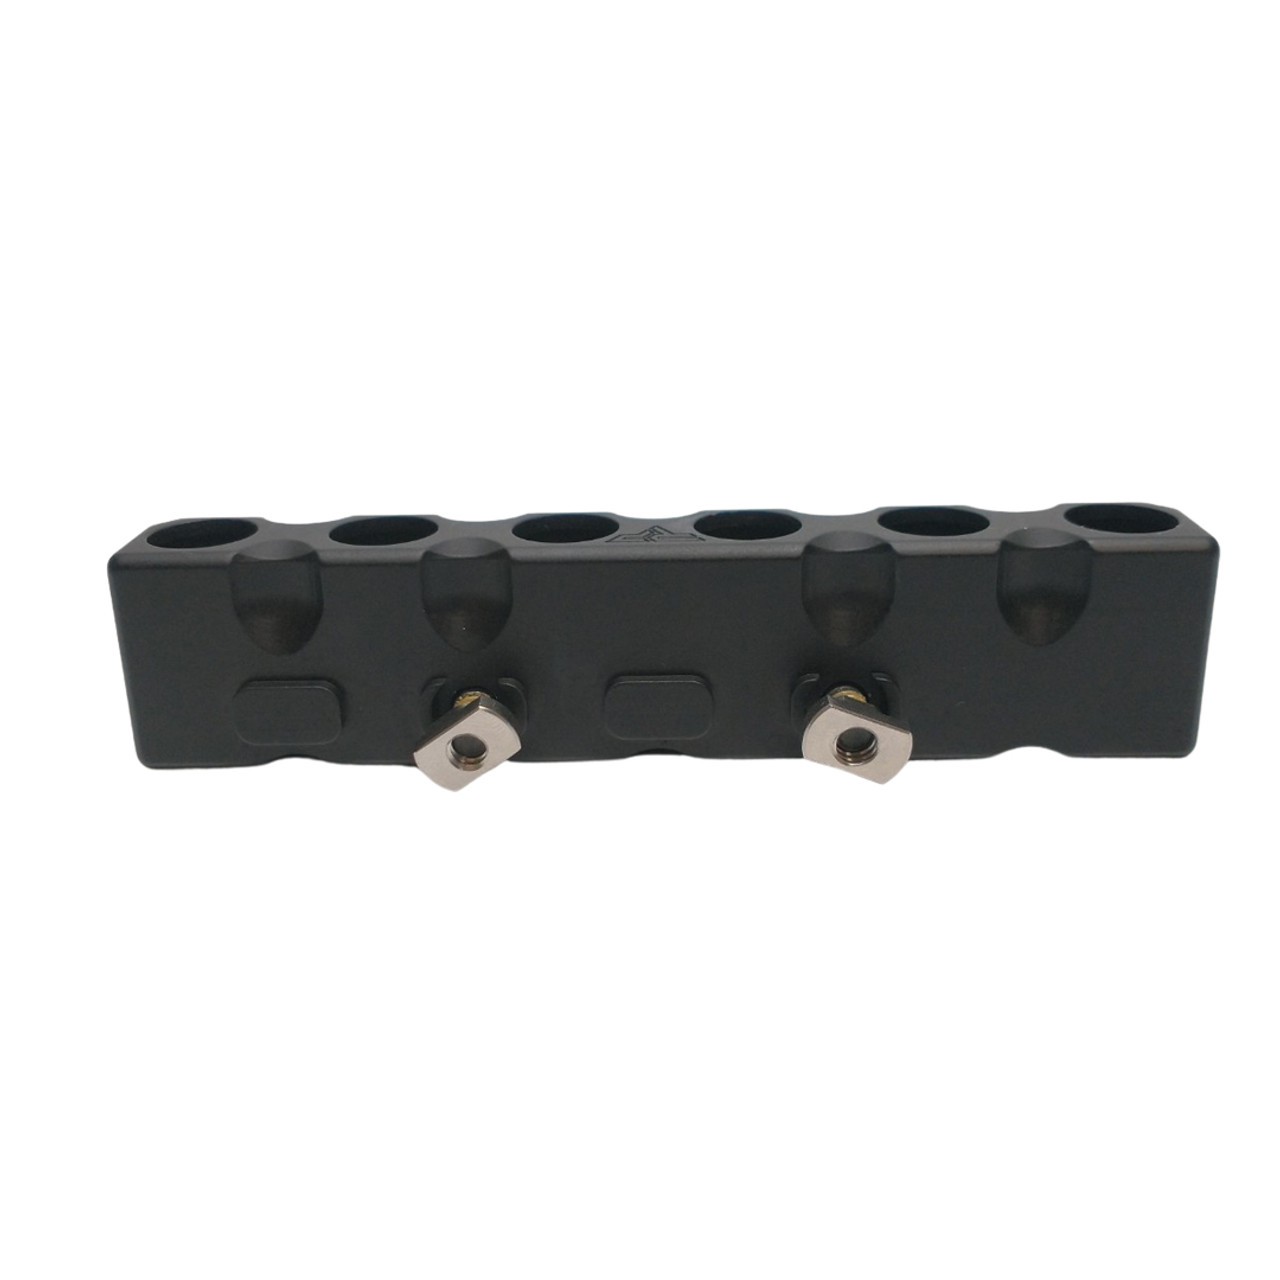 Ranger Point Precision M-LOK 44 MagCartridge Quiver holds six cartridges to complement our popular M-LOK forearm rails for Marlin, Henry, and Rossi lever-action rifles (will also work with any M-LOK rail on the market).